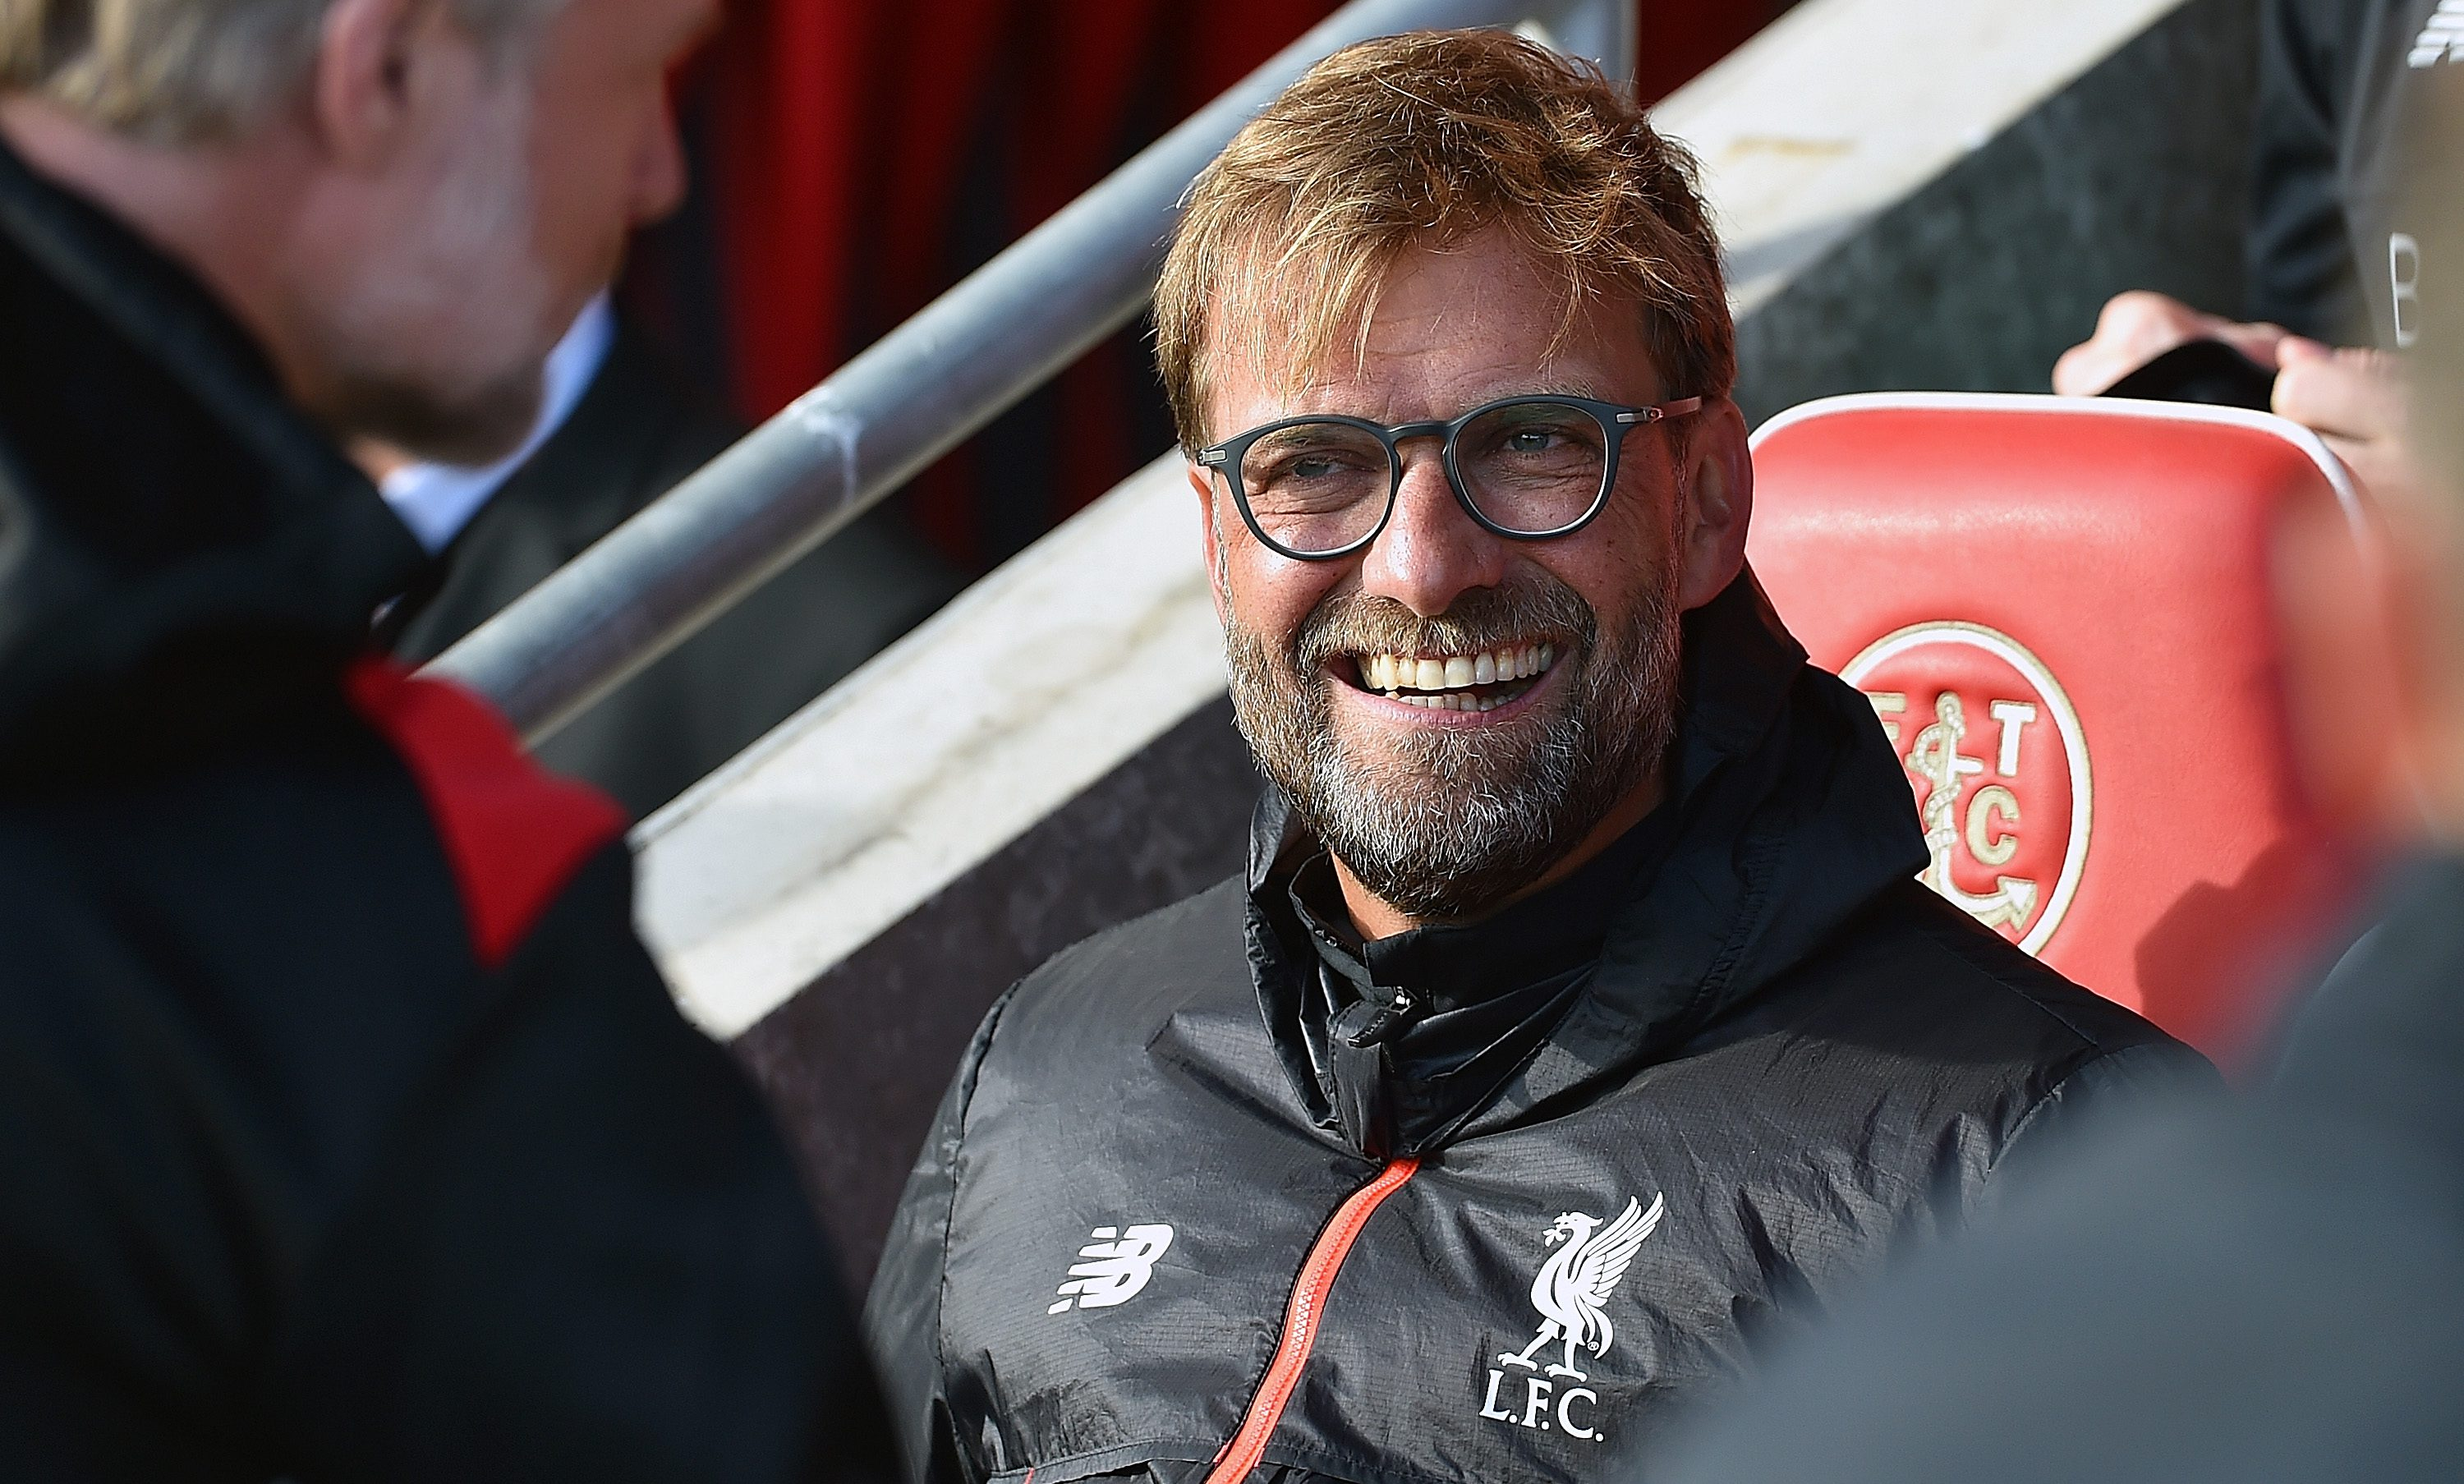 FLEETWOOD, ENGLAND - JULY 13:  (THE SUN OUT, THE SUN ON SUNDAY OUT) Jurgen Klopp manager of Liverpool during the Pre-Season Friendly match bewteen Fleetwood Town and Liverpool at Highbury Stadium on July 13, 2016 in Fleetwood, England.  (Photo by Andrew Powell/Liverpool FC via Getty Images )